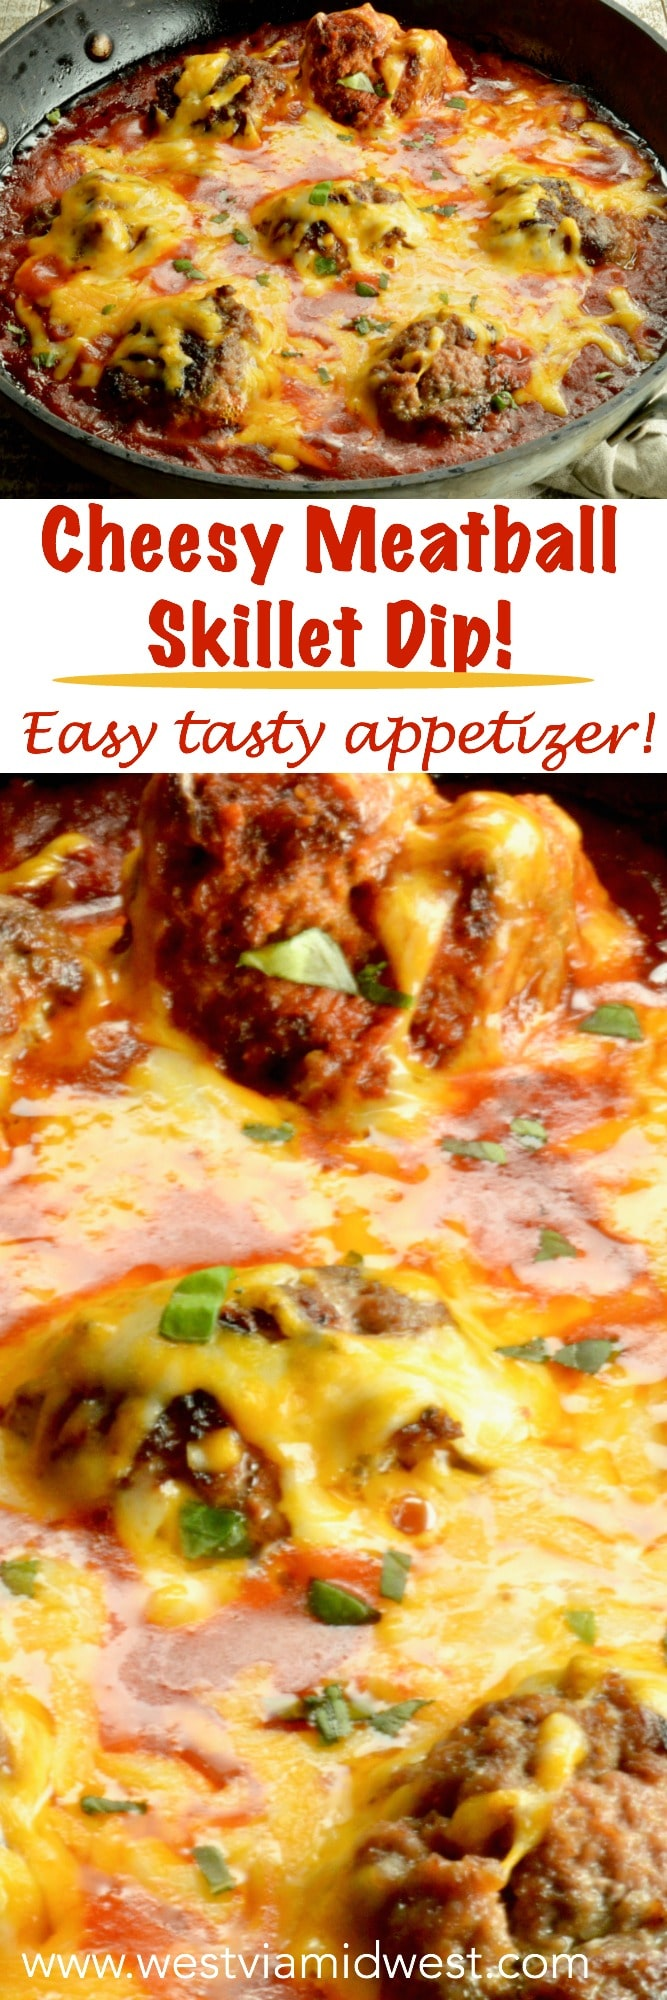 Cheesy Meatball Skillet dip is a quick appetizer that your guests will love.  Tender meatballs, with a light tomato sauce with lots of melty cheeses for complete comfort food. www.westviamidwest.com #appetizer #gameday